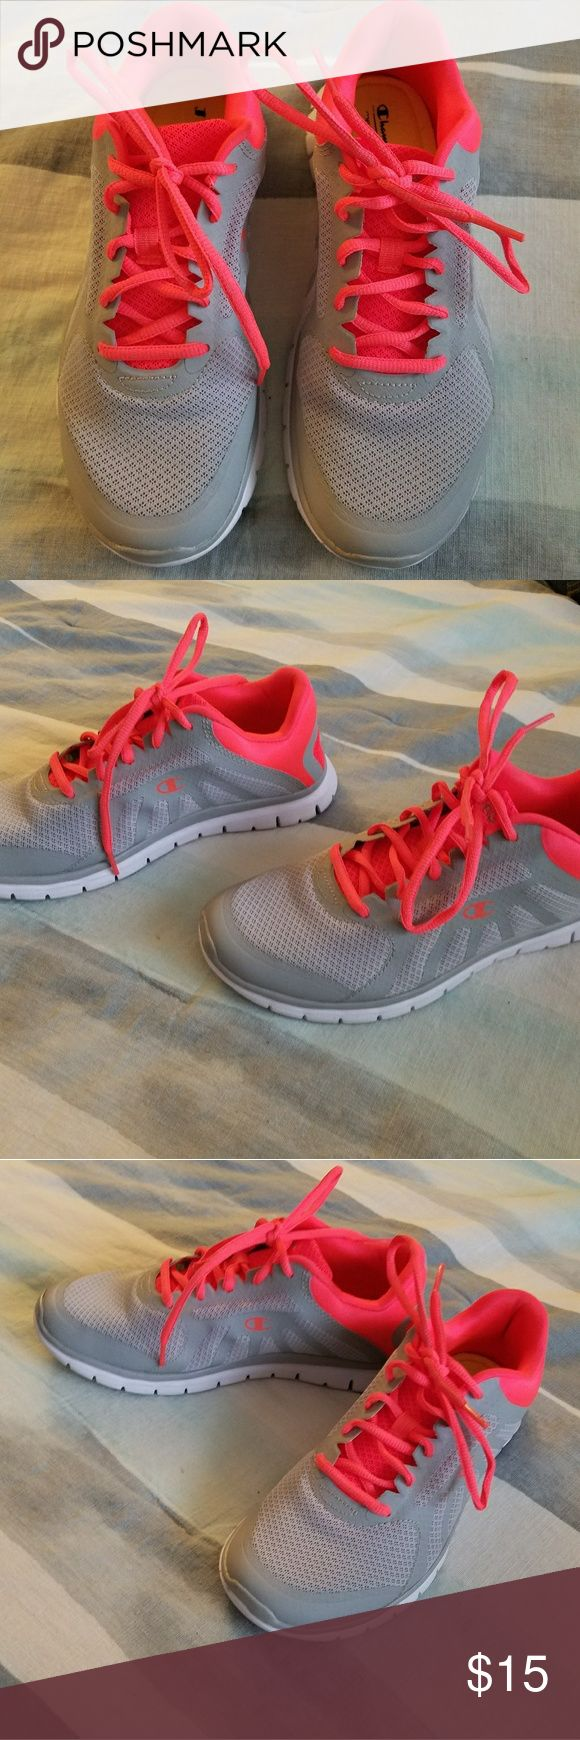 Grey running shoes Sz 7.5 Champion brands from payless  Bright orange laces  Worn once. Super cushy and comfy. Champion Shoes Athletic Shoes